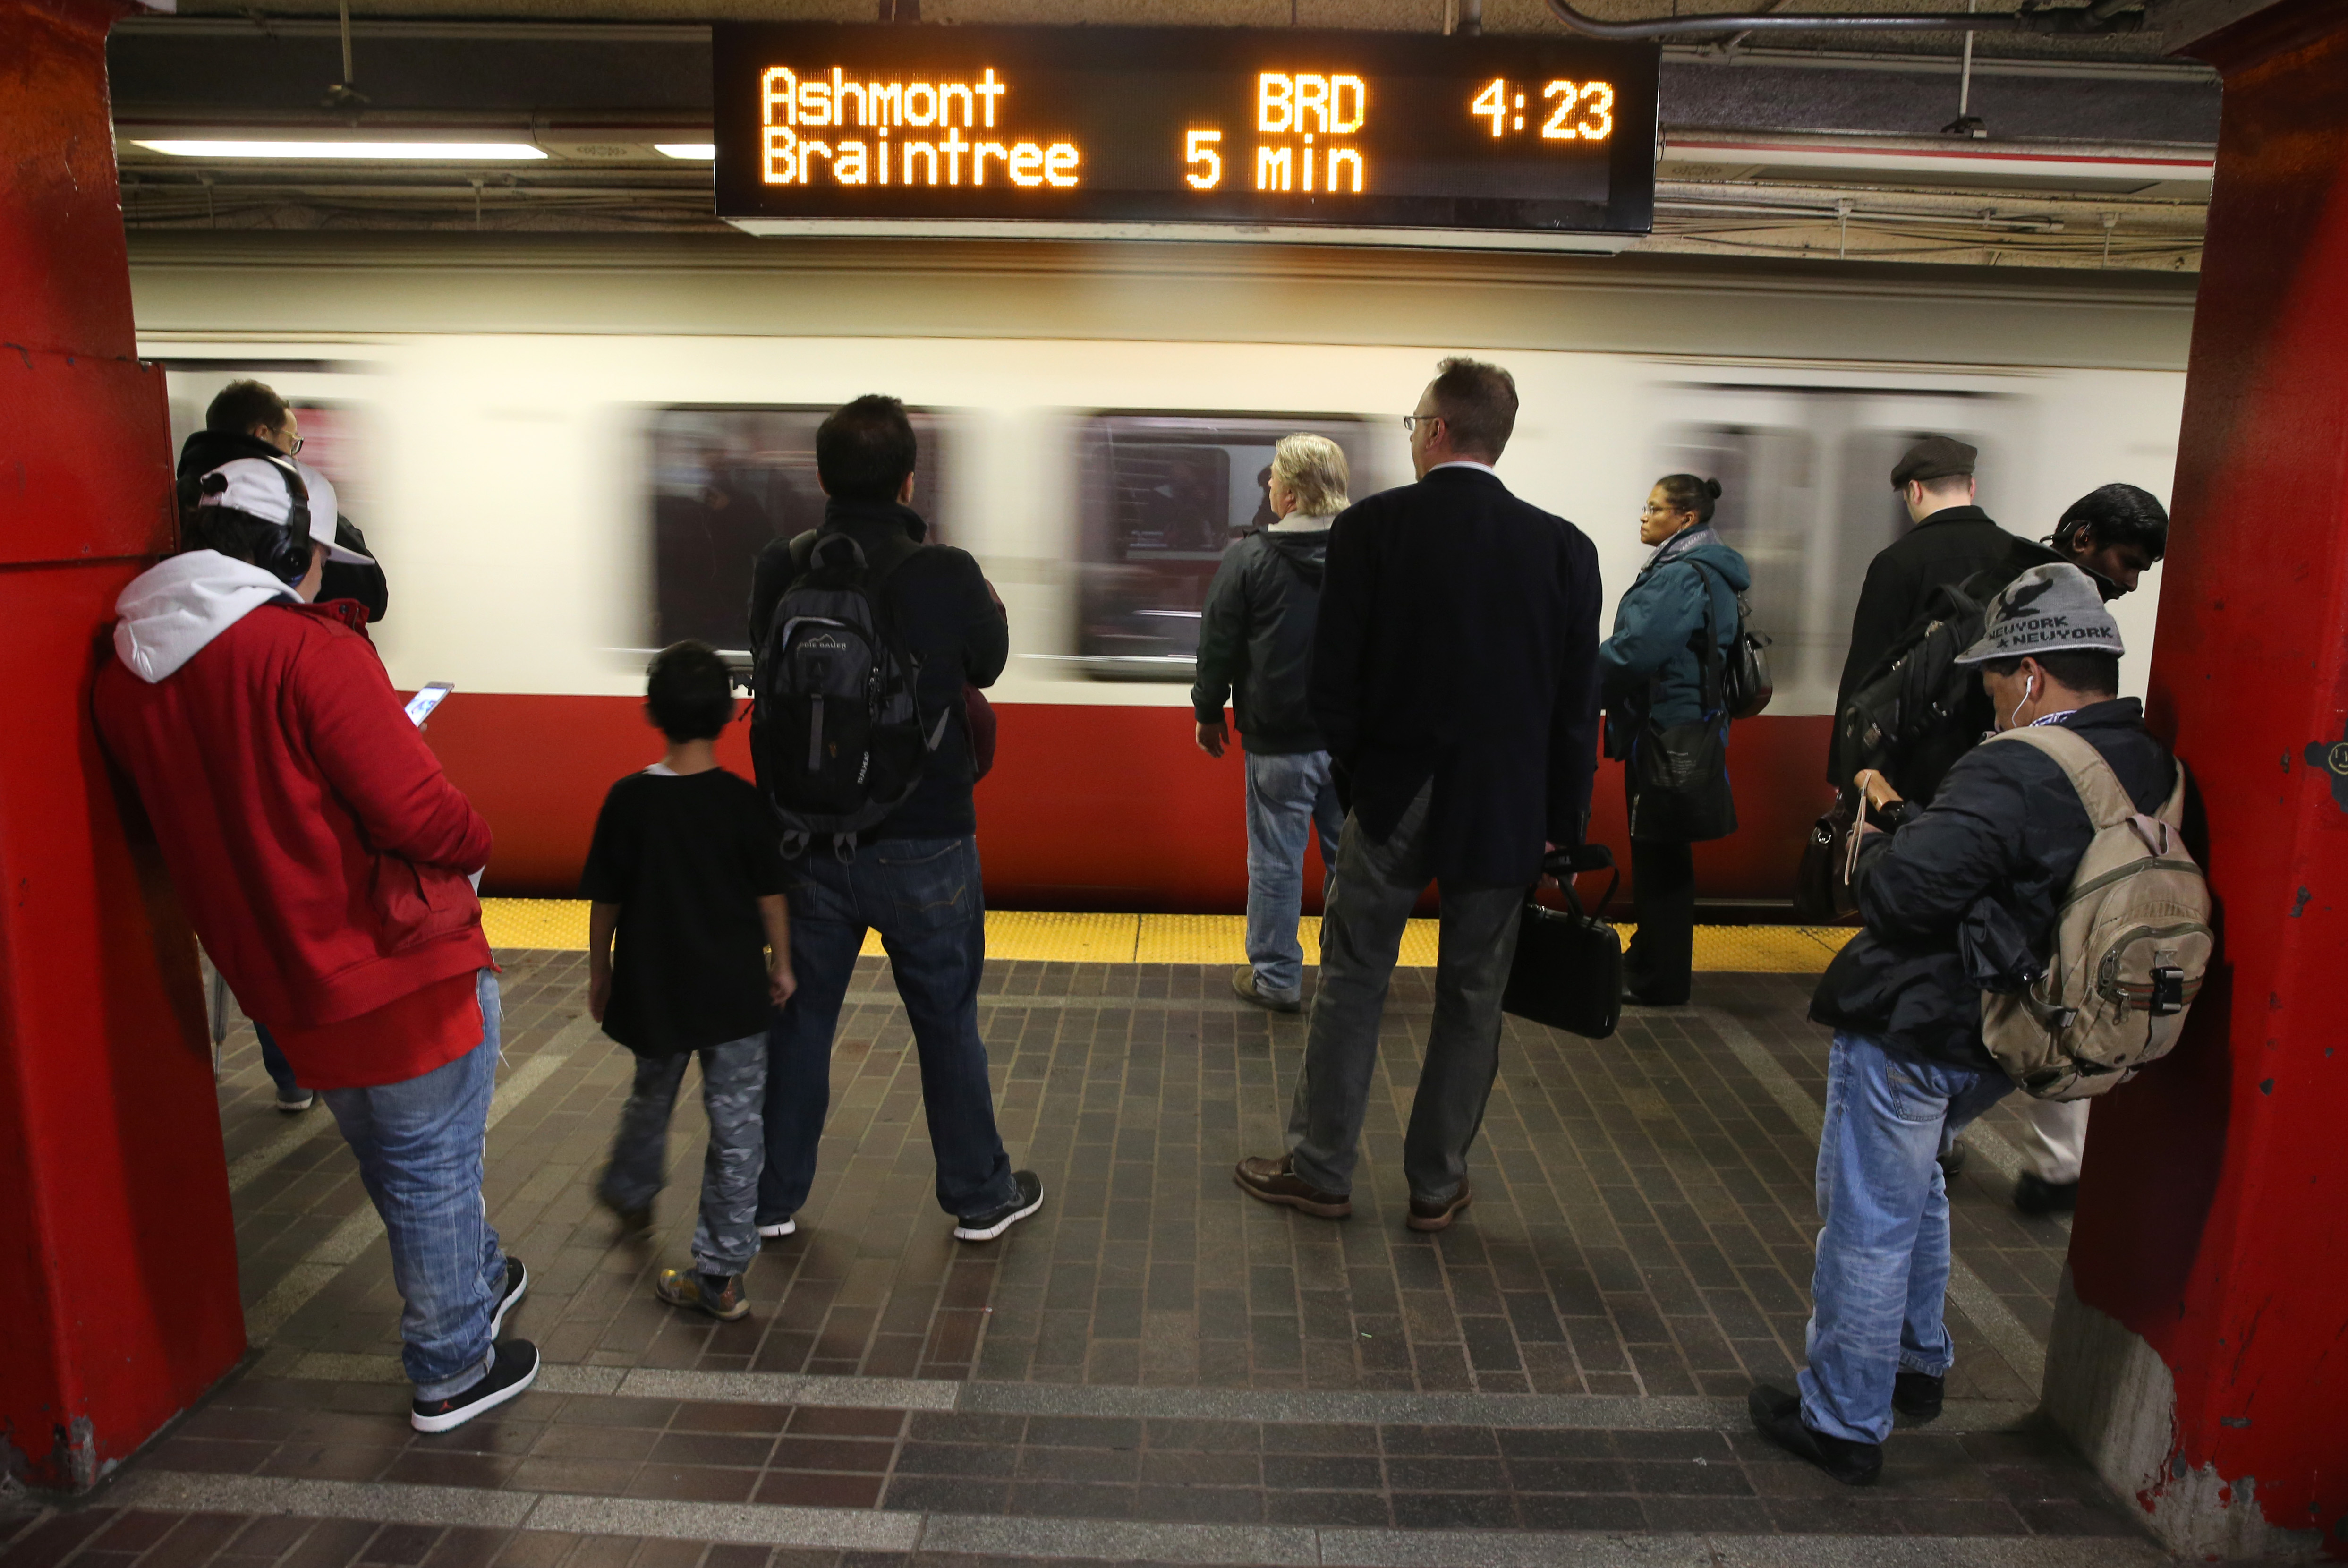 Boston-area mass transit apps: 5 for helping navigate the T